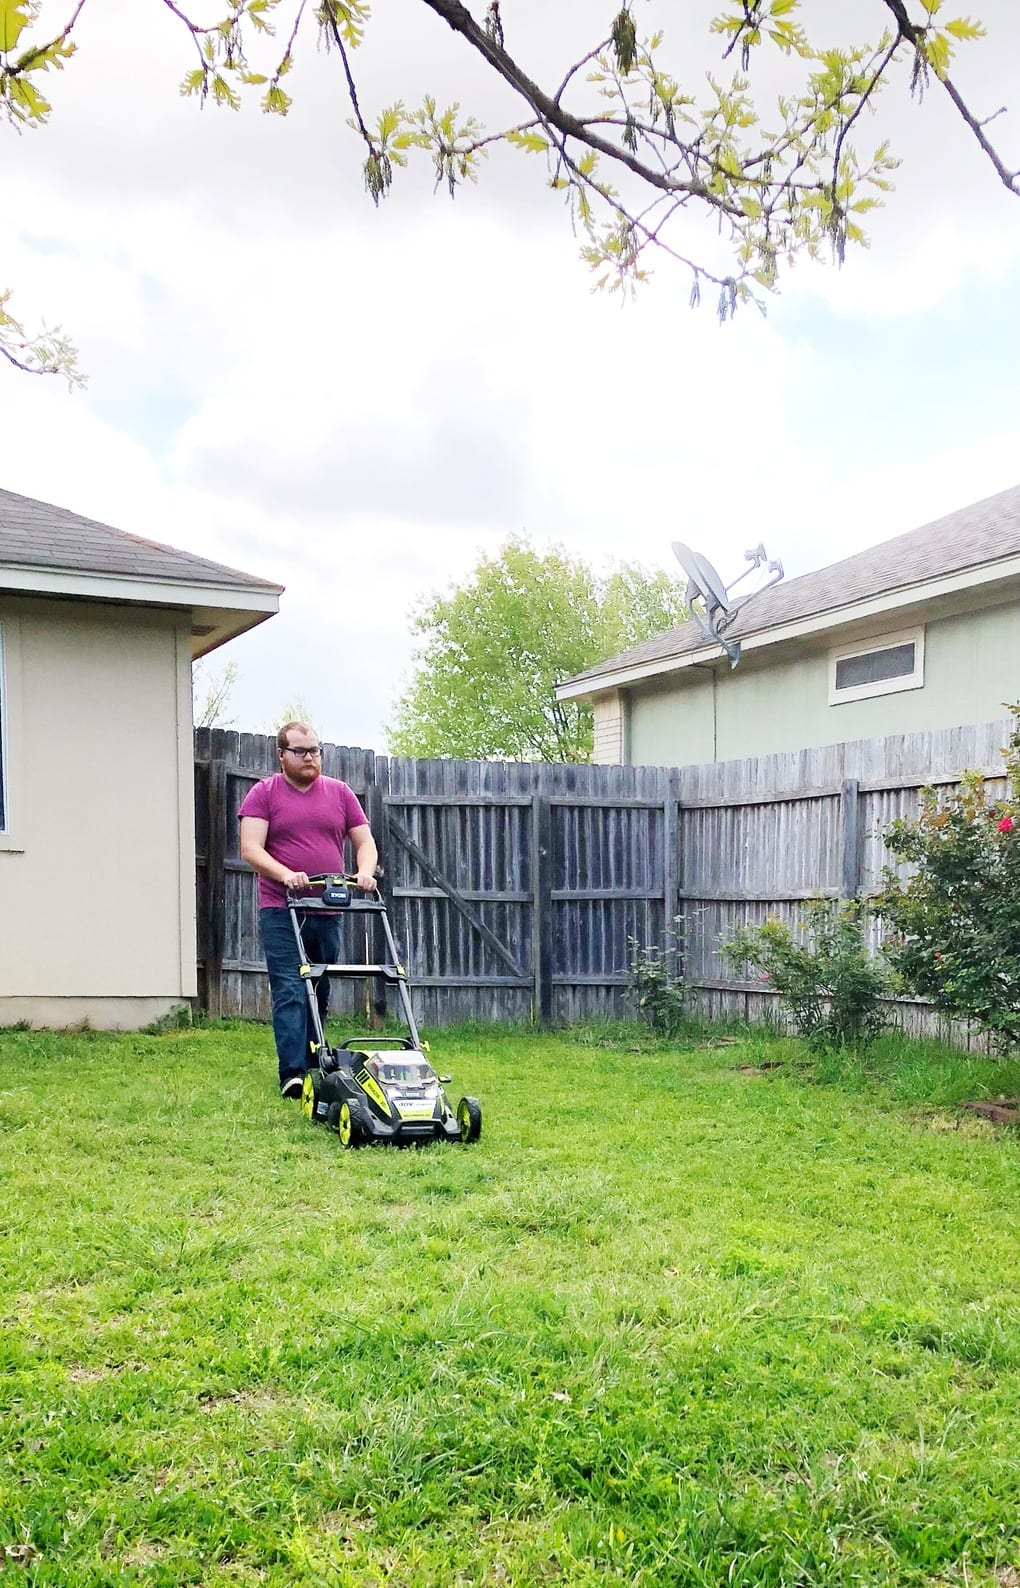 Ryobi battery powered mower